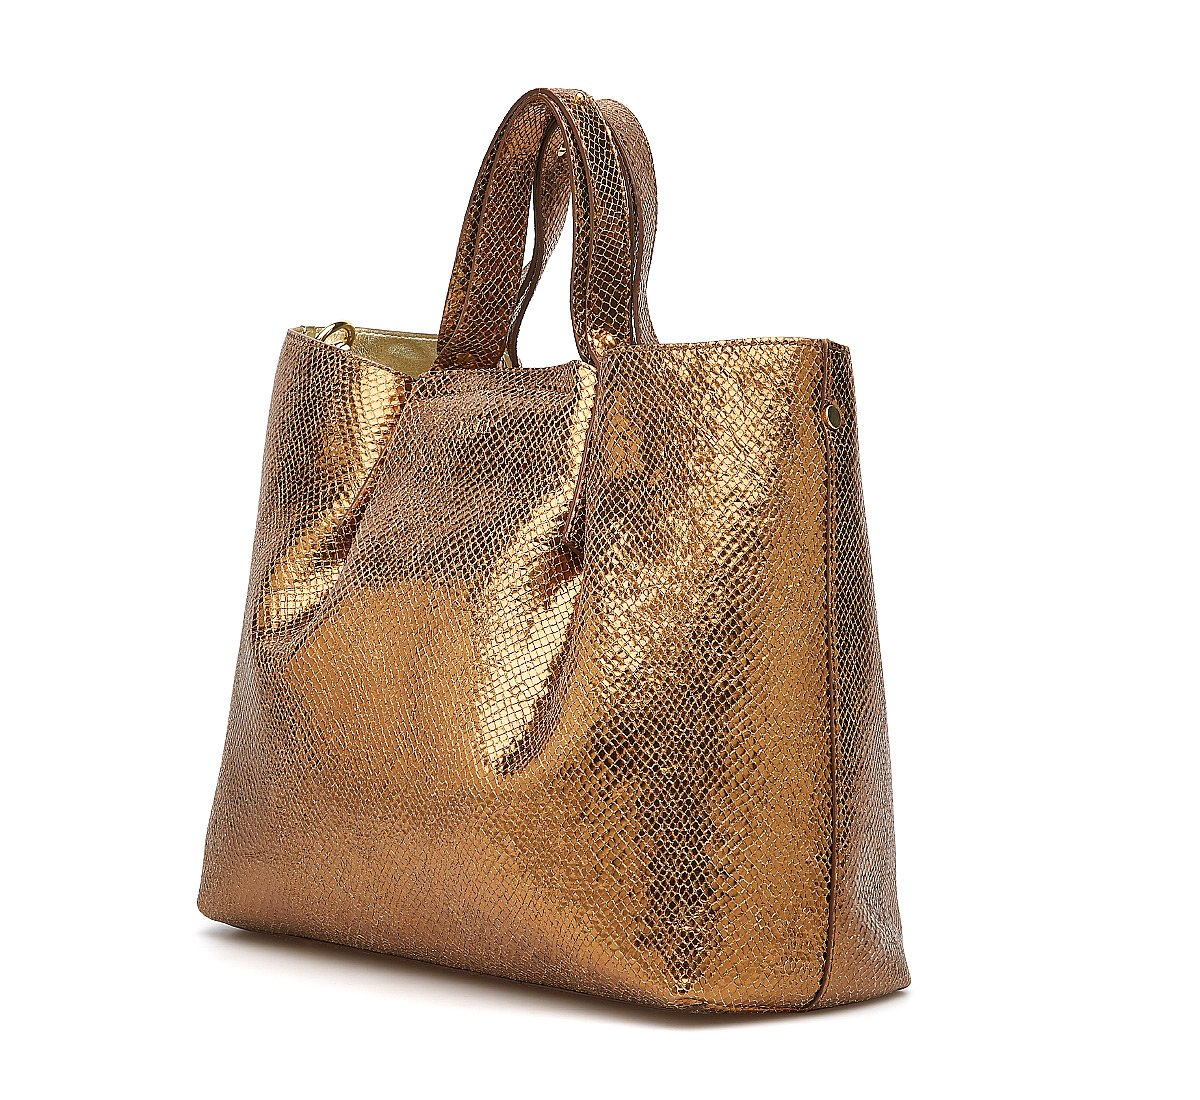 Shopper in laminated leather